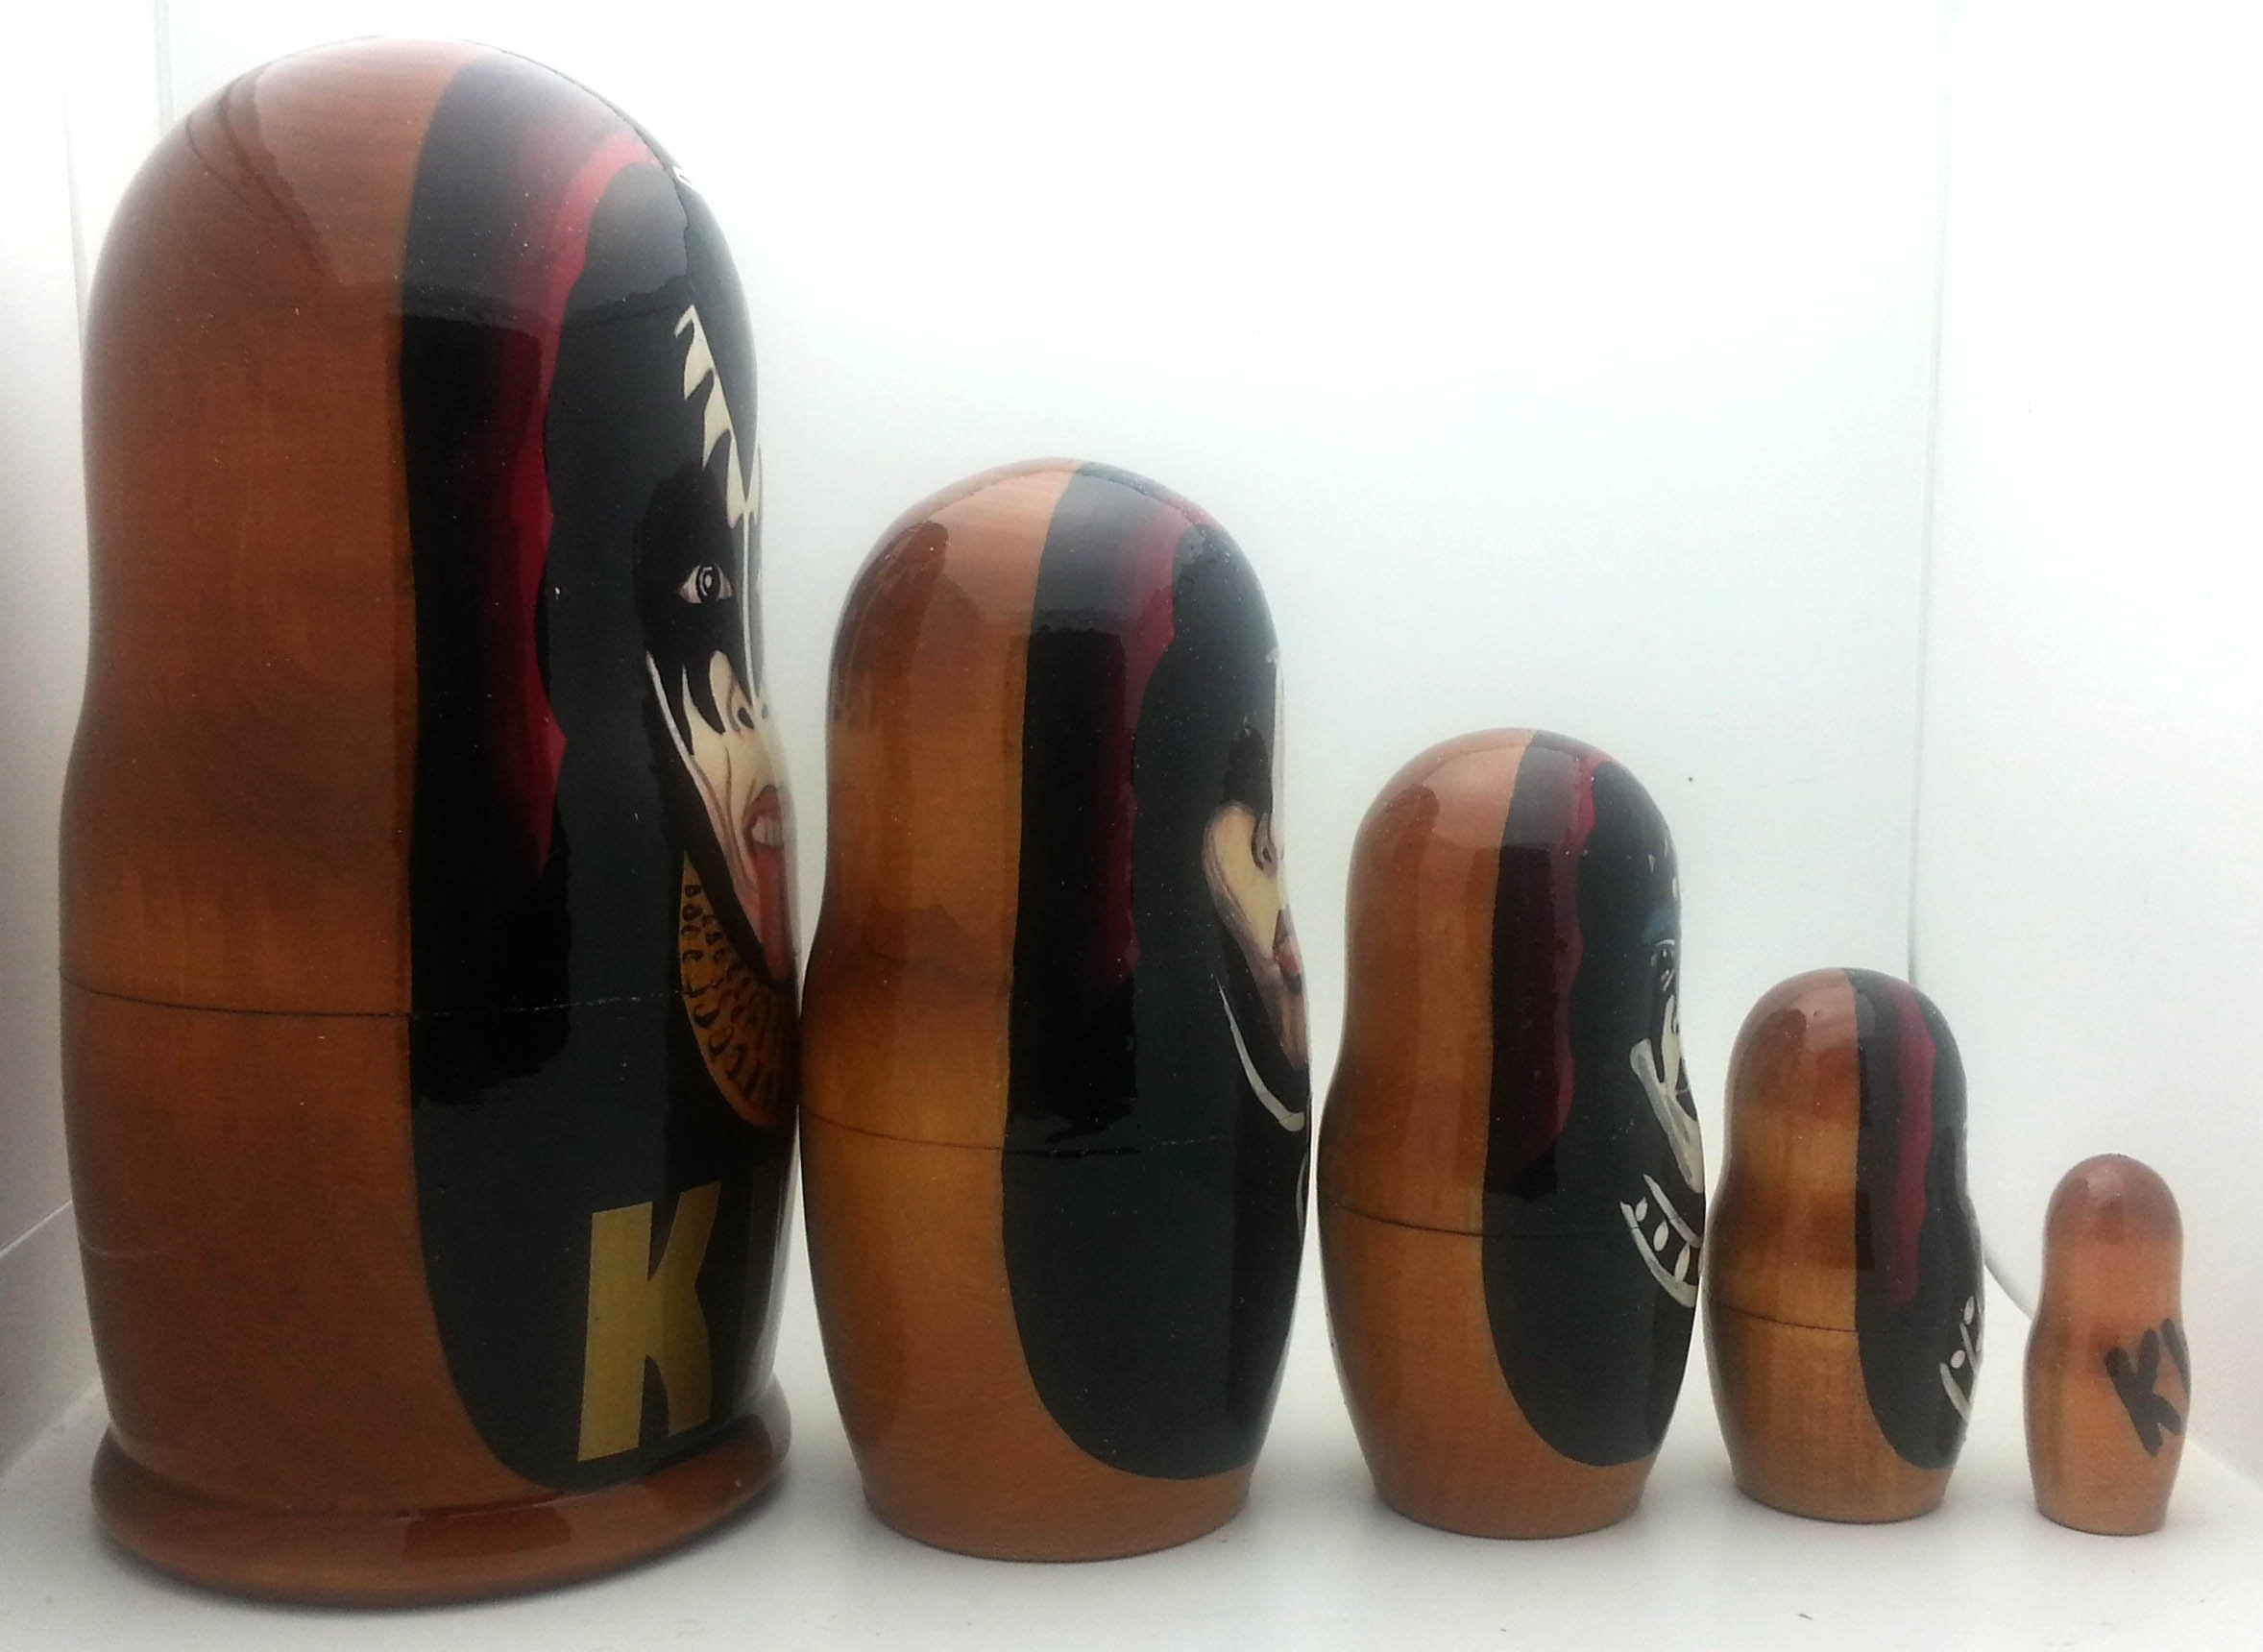 Kiss Russian Nesting dolls 5 piece DOLL Set 7 by BuyRussianGifts (Image #3)